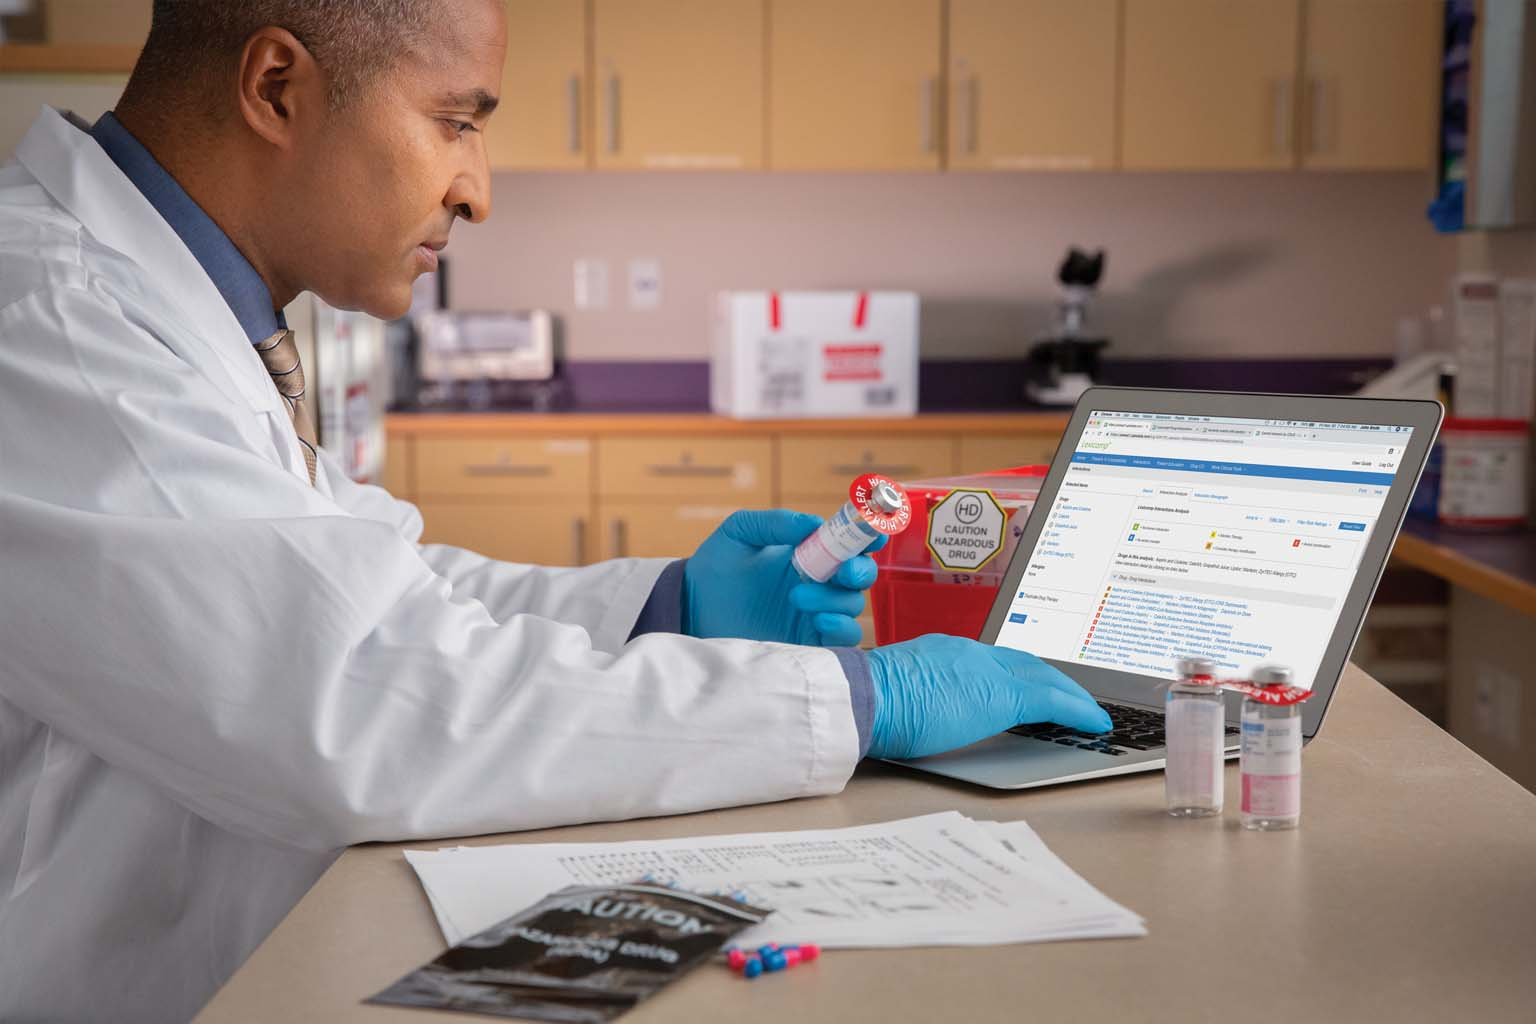 doctor holding vial near laptop displaying Lexicomp